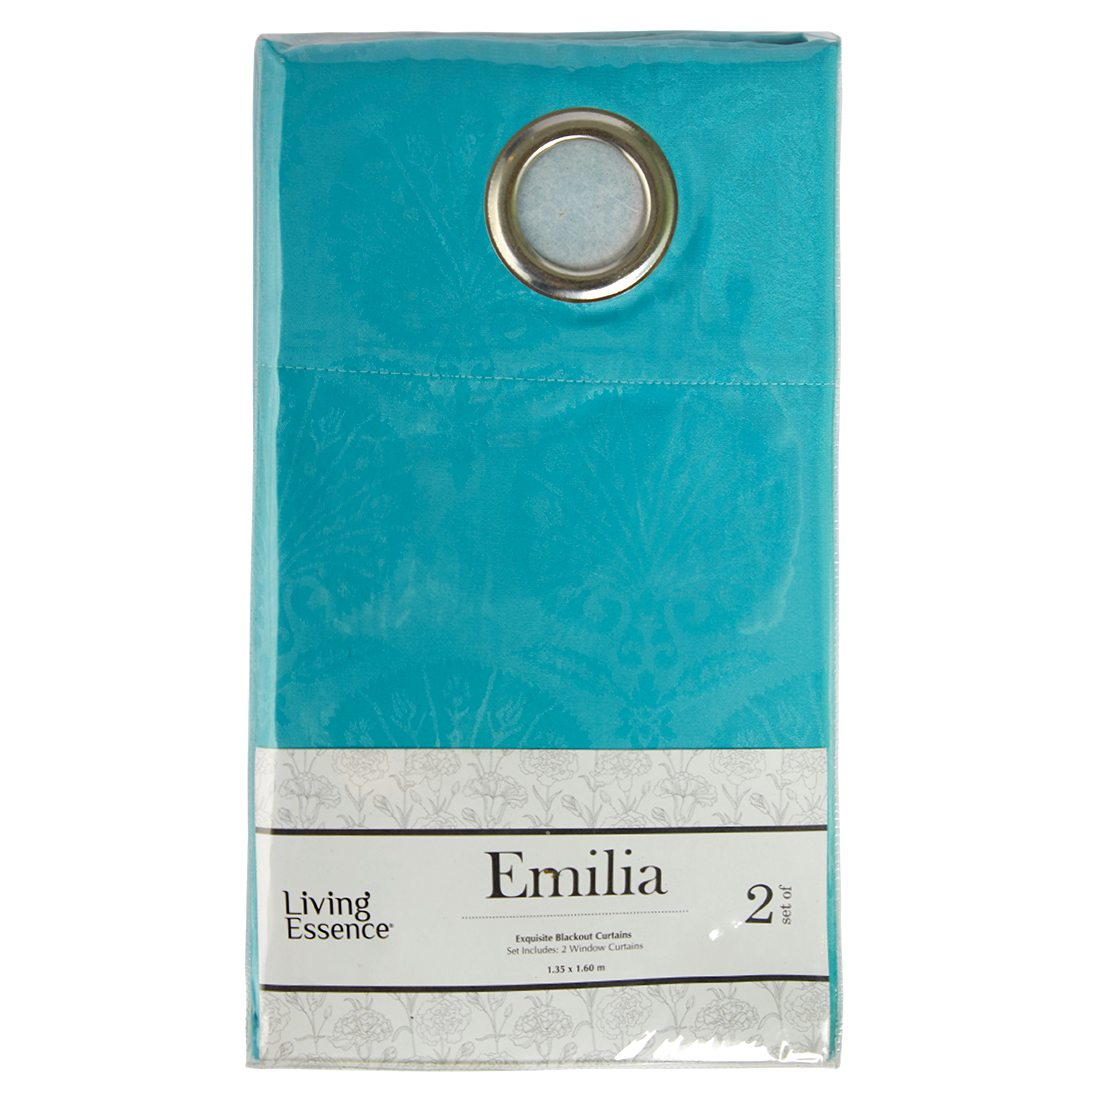 Emilia Jacquard Polyester Window Curtains in Turquoise Colour by Living Essence